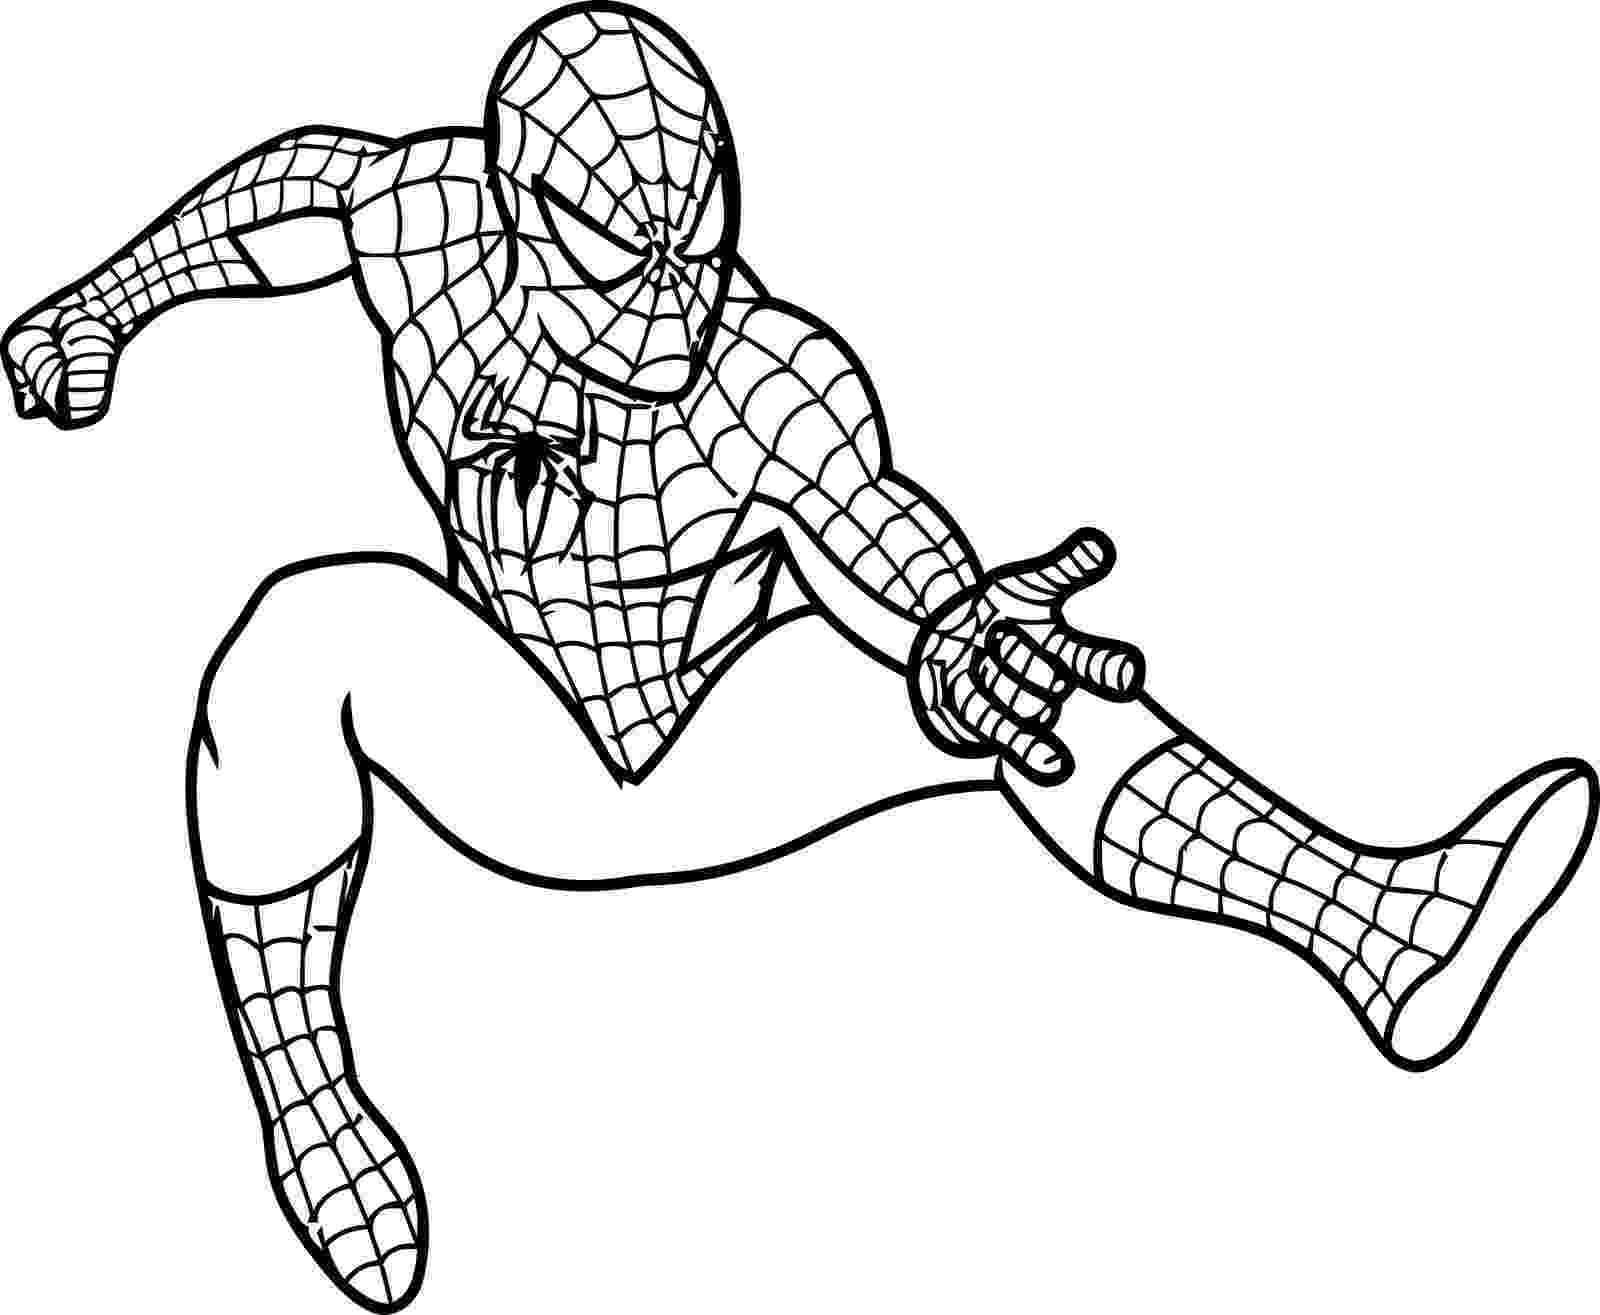 spiderman color sheets printable spiderman coloring pages for kids cool2bkids color spiderman sheets